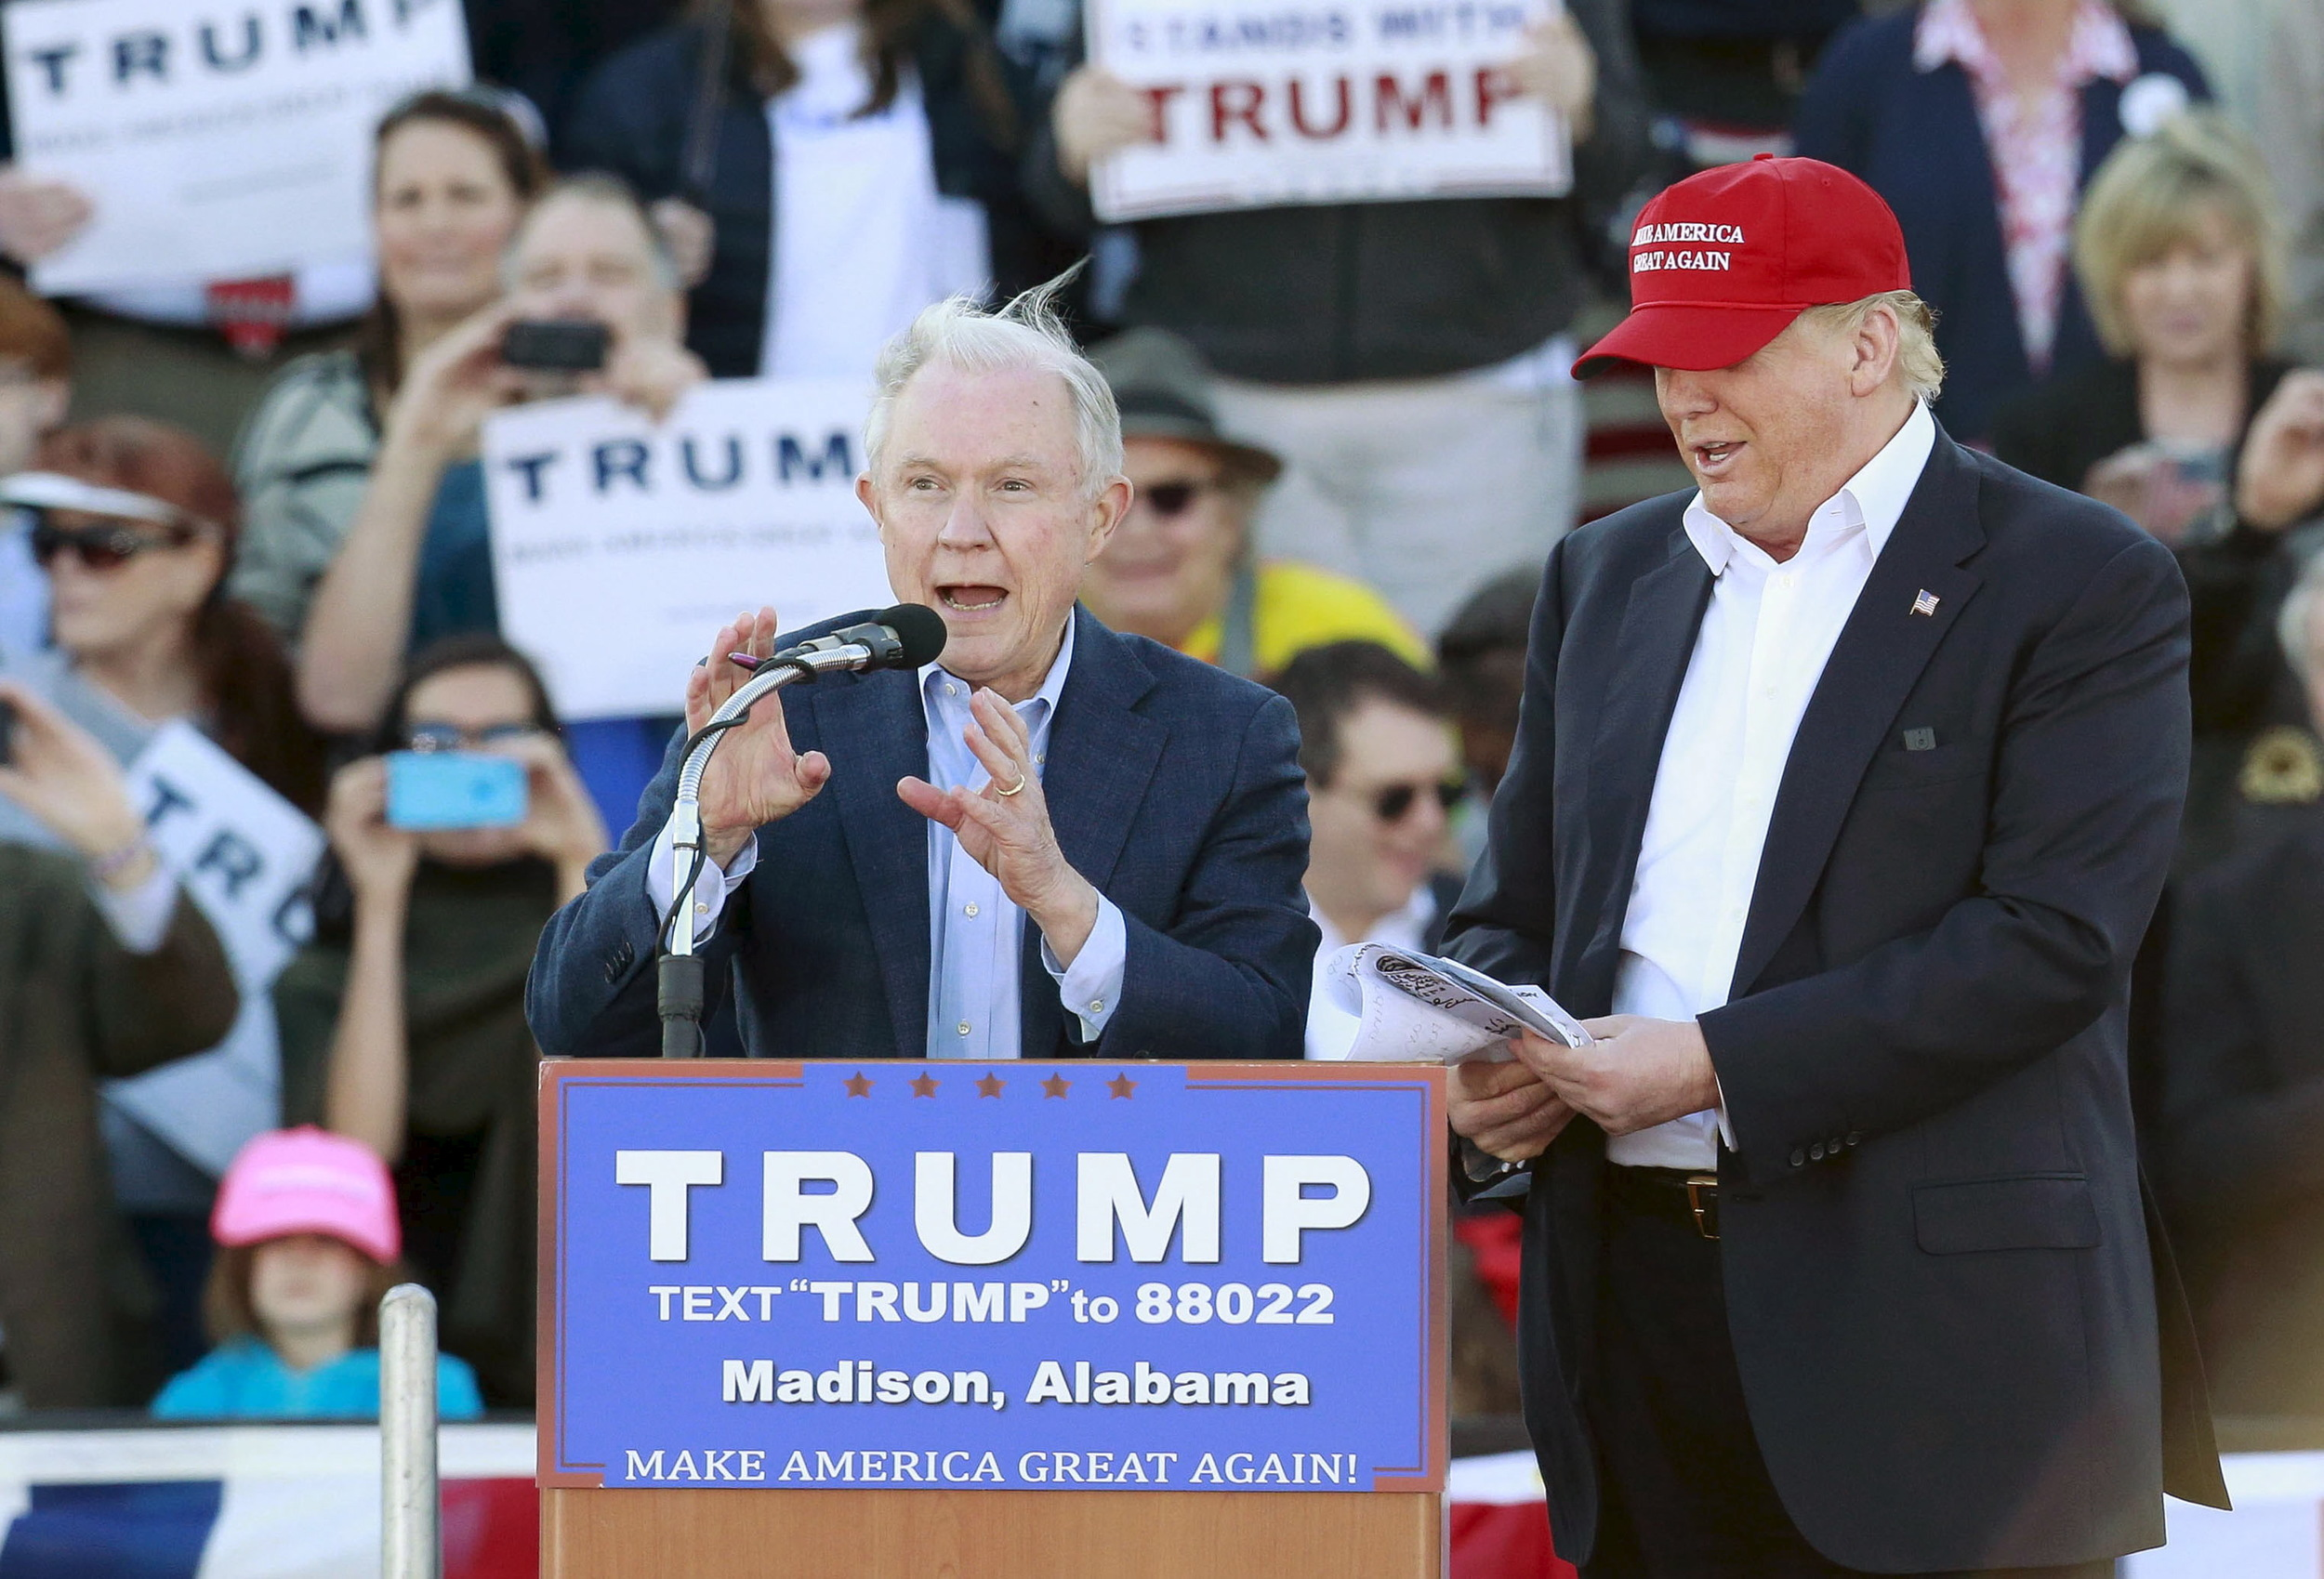 Report: Leading candidate to succeed Jeff Sessions emerges